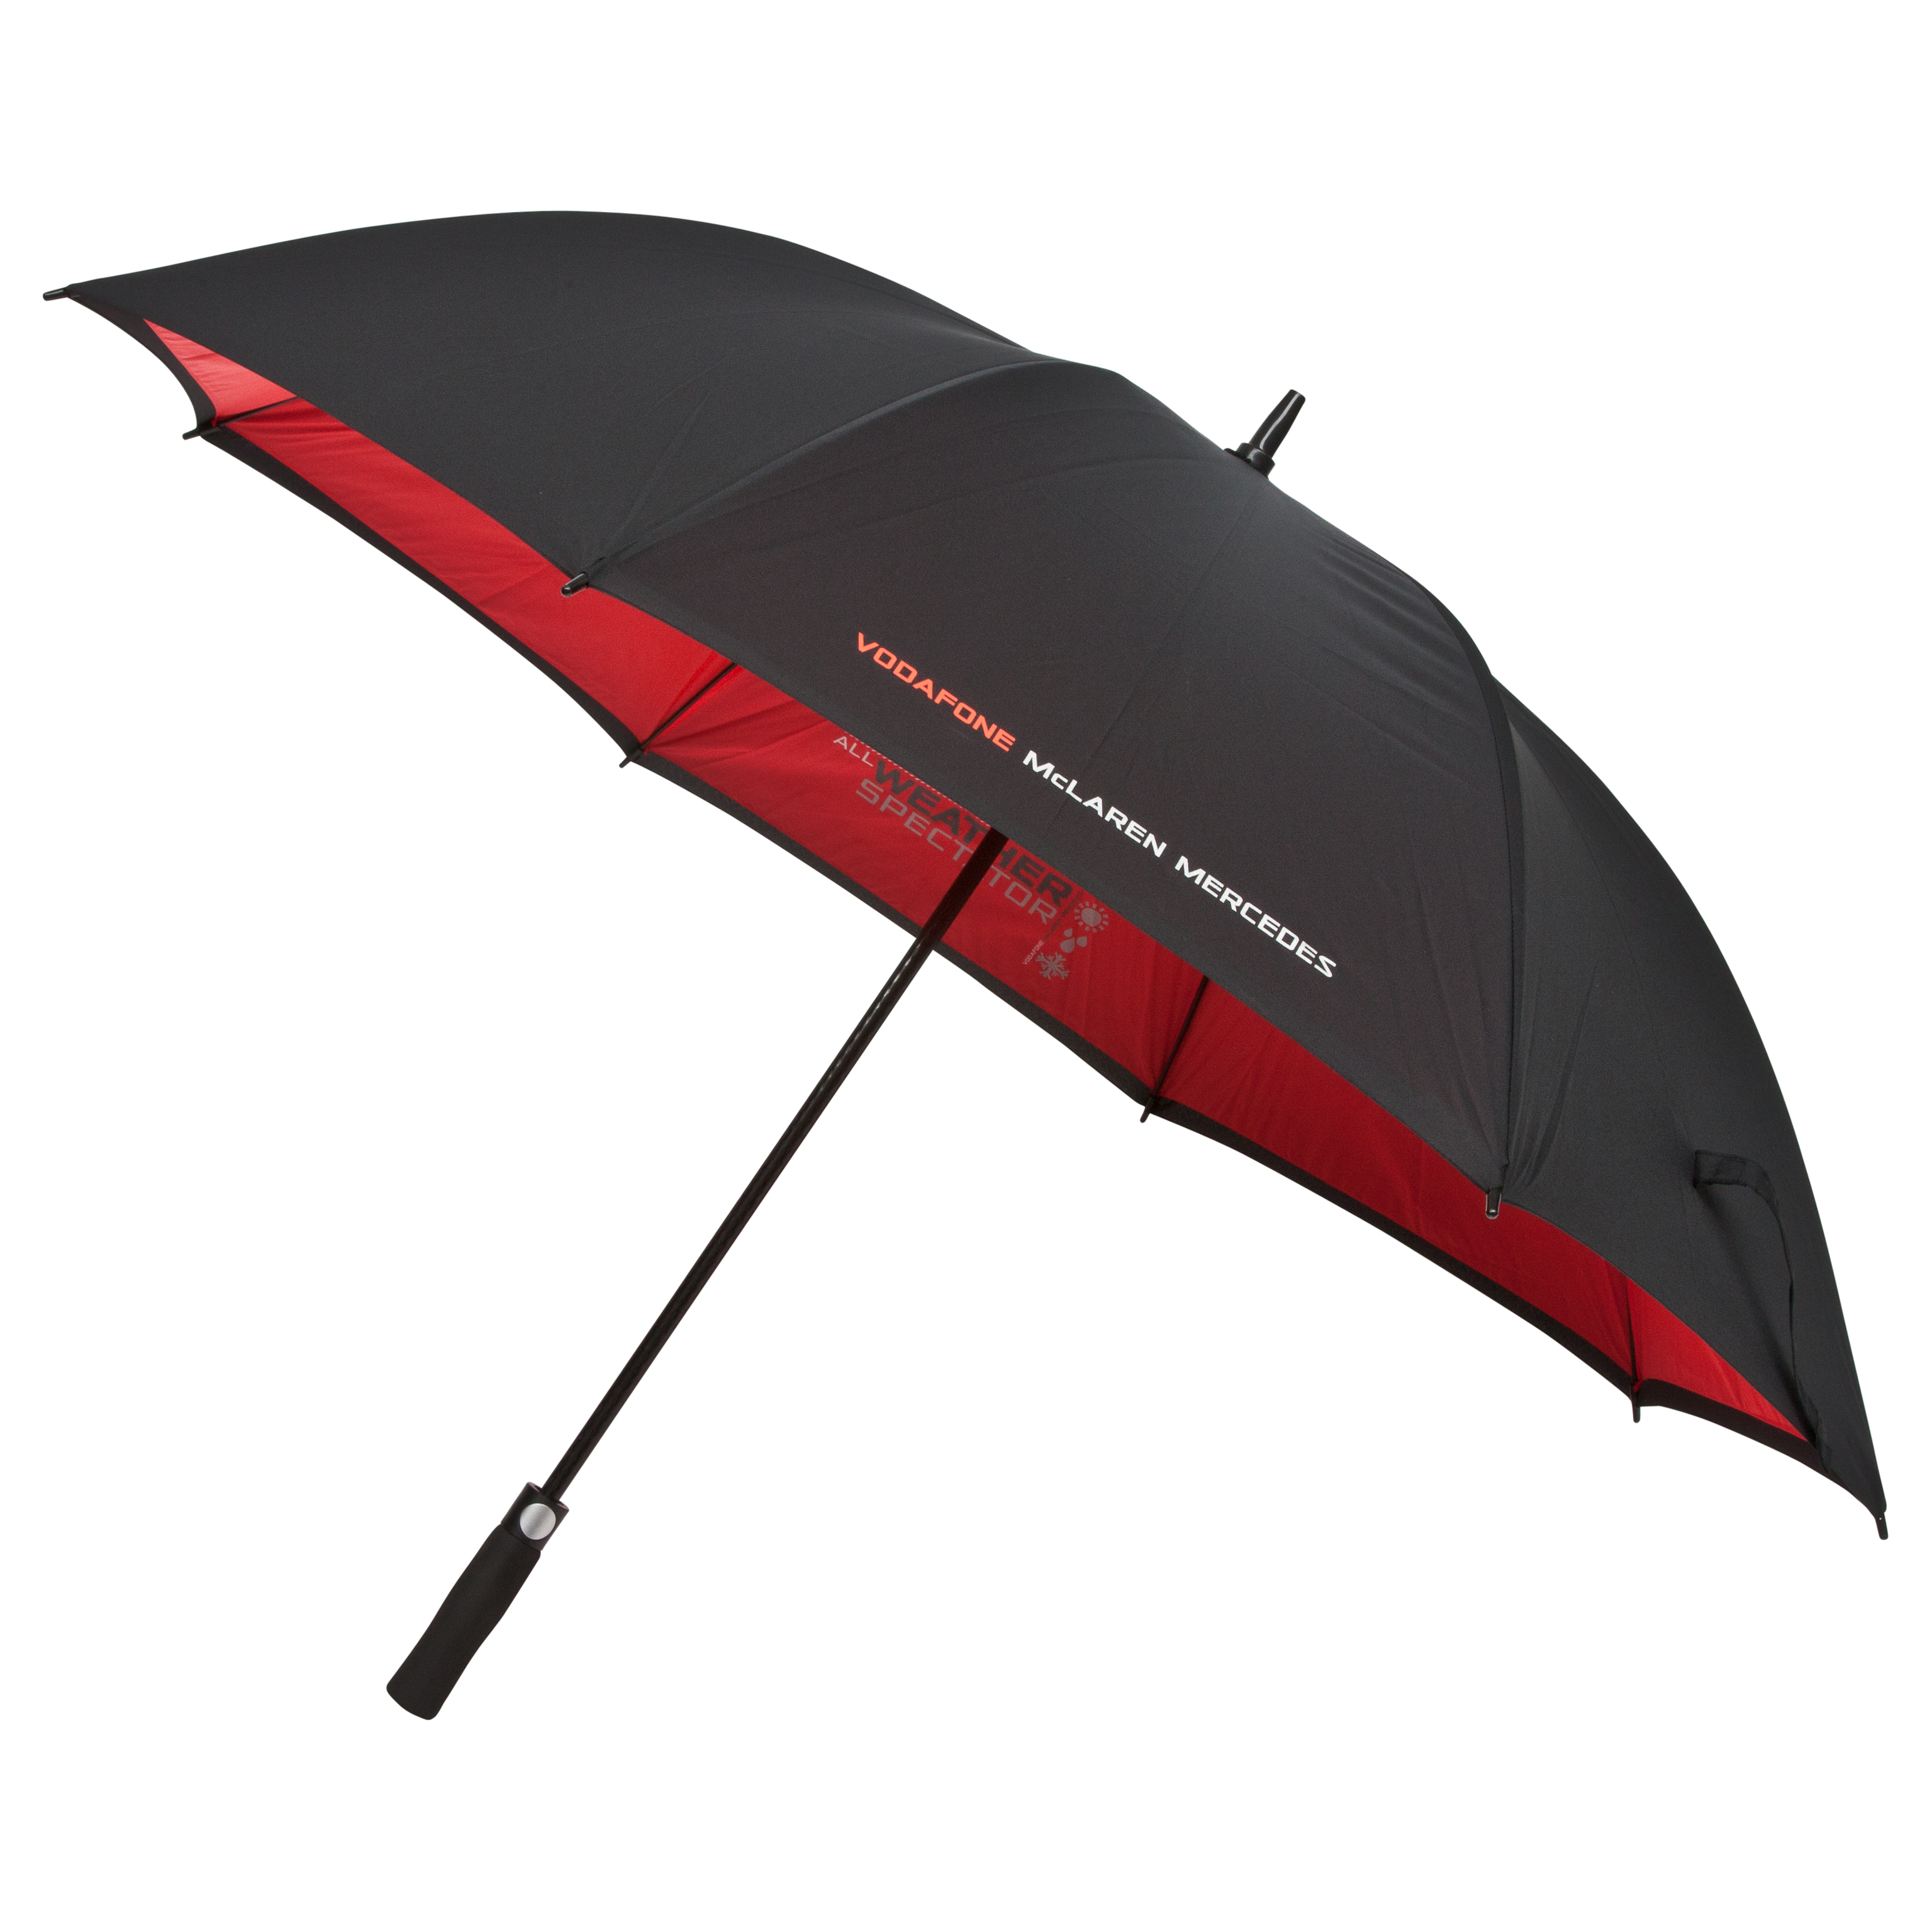 Vodafone McLaren Mercedes Umbrella